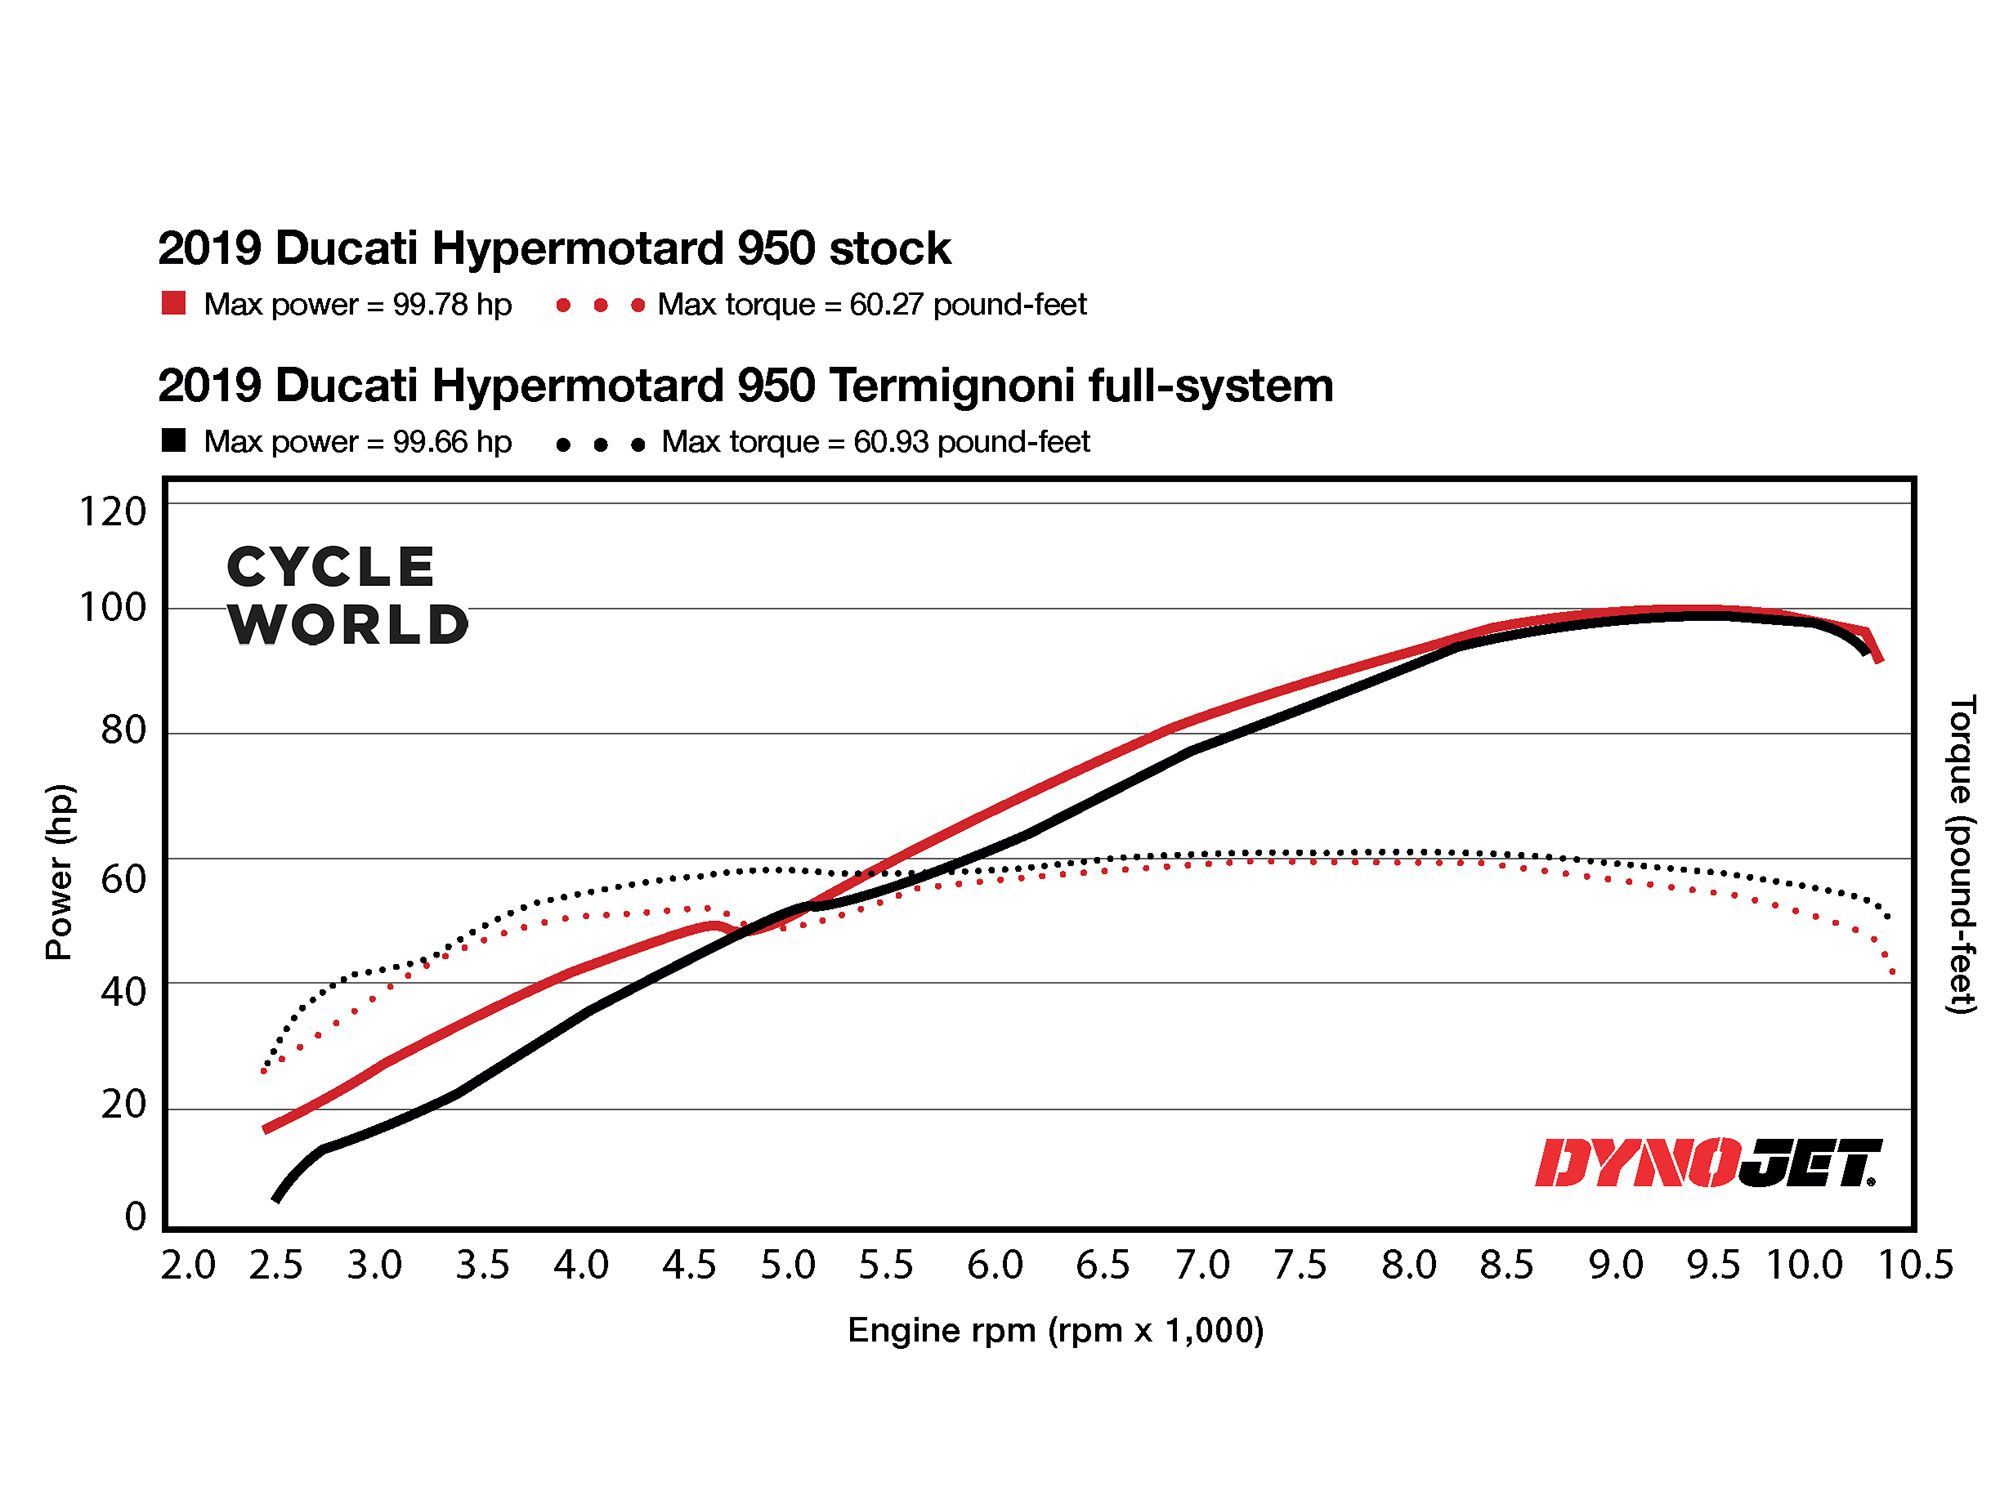 The before-after dyno chart shows that the Termignoni system smooths out the dip in horsepower around 4,750 rpm, but doesn't increase power along the curve. However, the graph shows that it does improve torque everywhere. For what it's worth, Ducati insists that with its dyno, peak power output is increased.